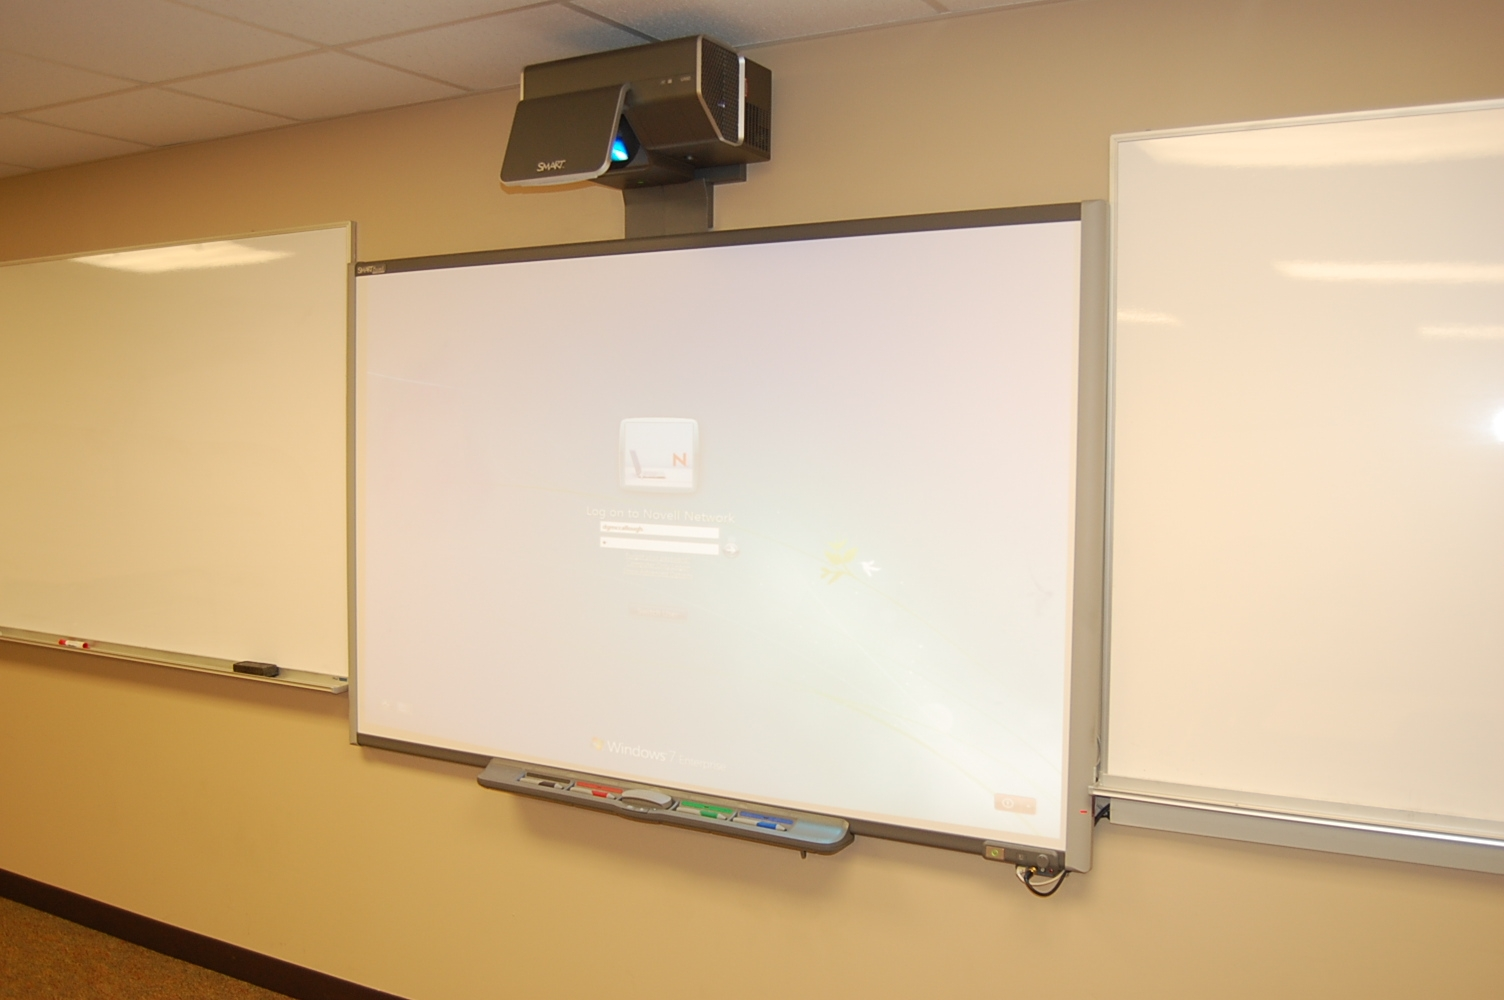 classroom with smartboard clipart - HD1504×1000